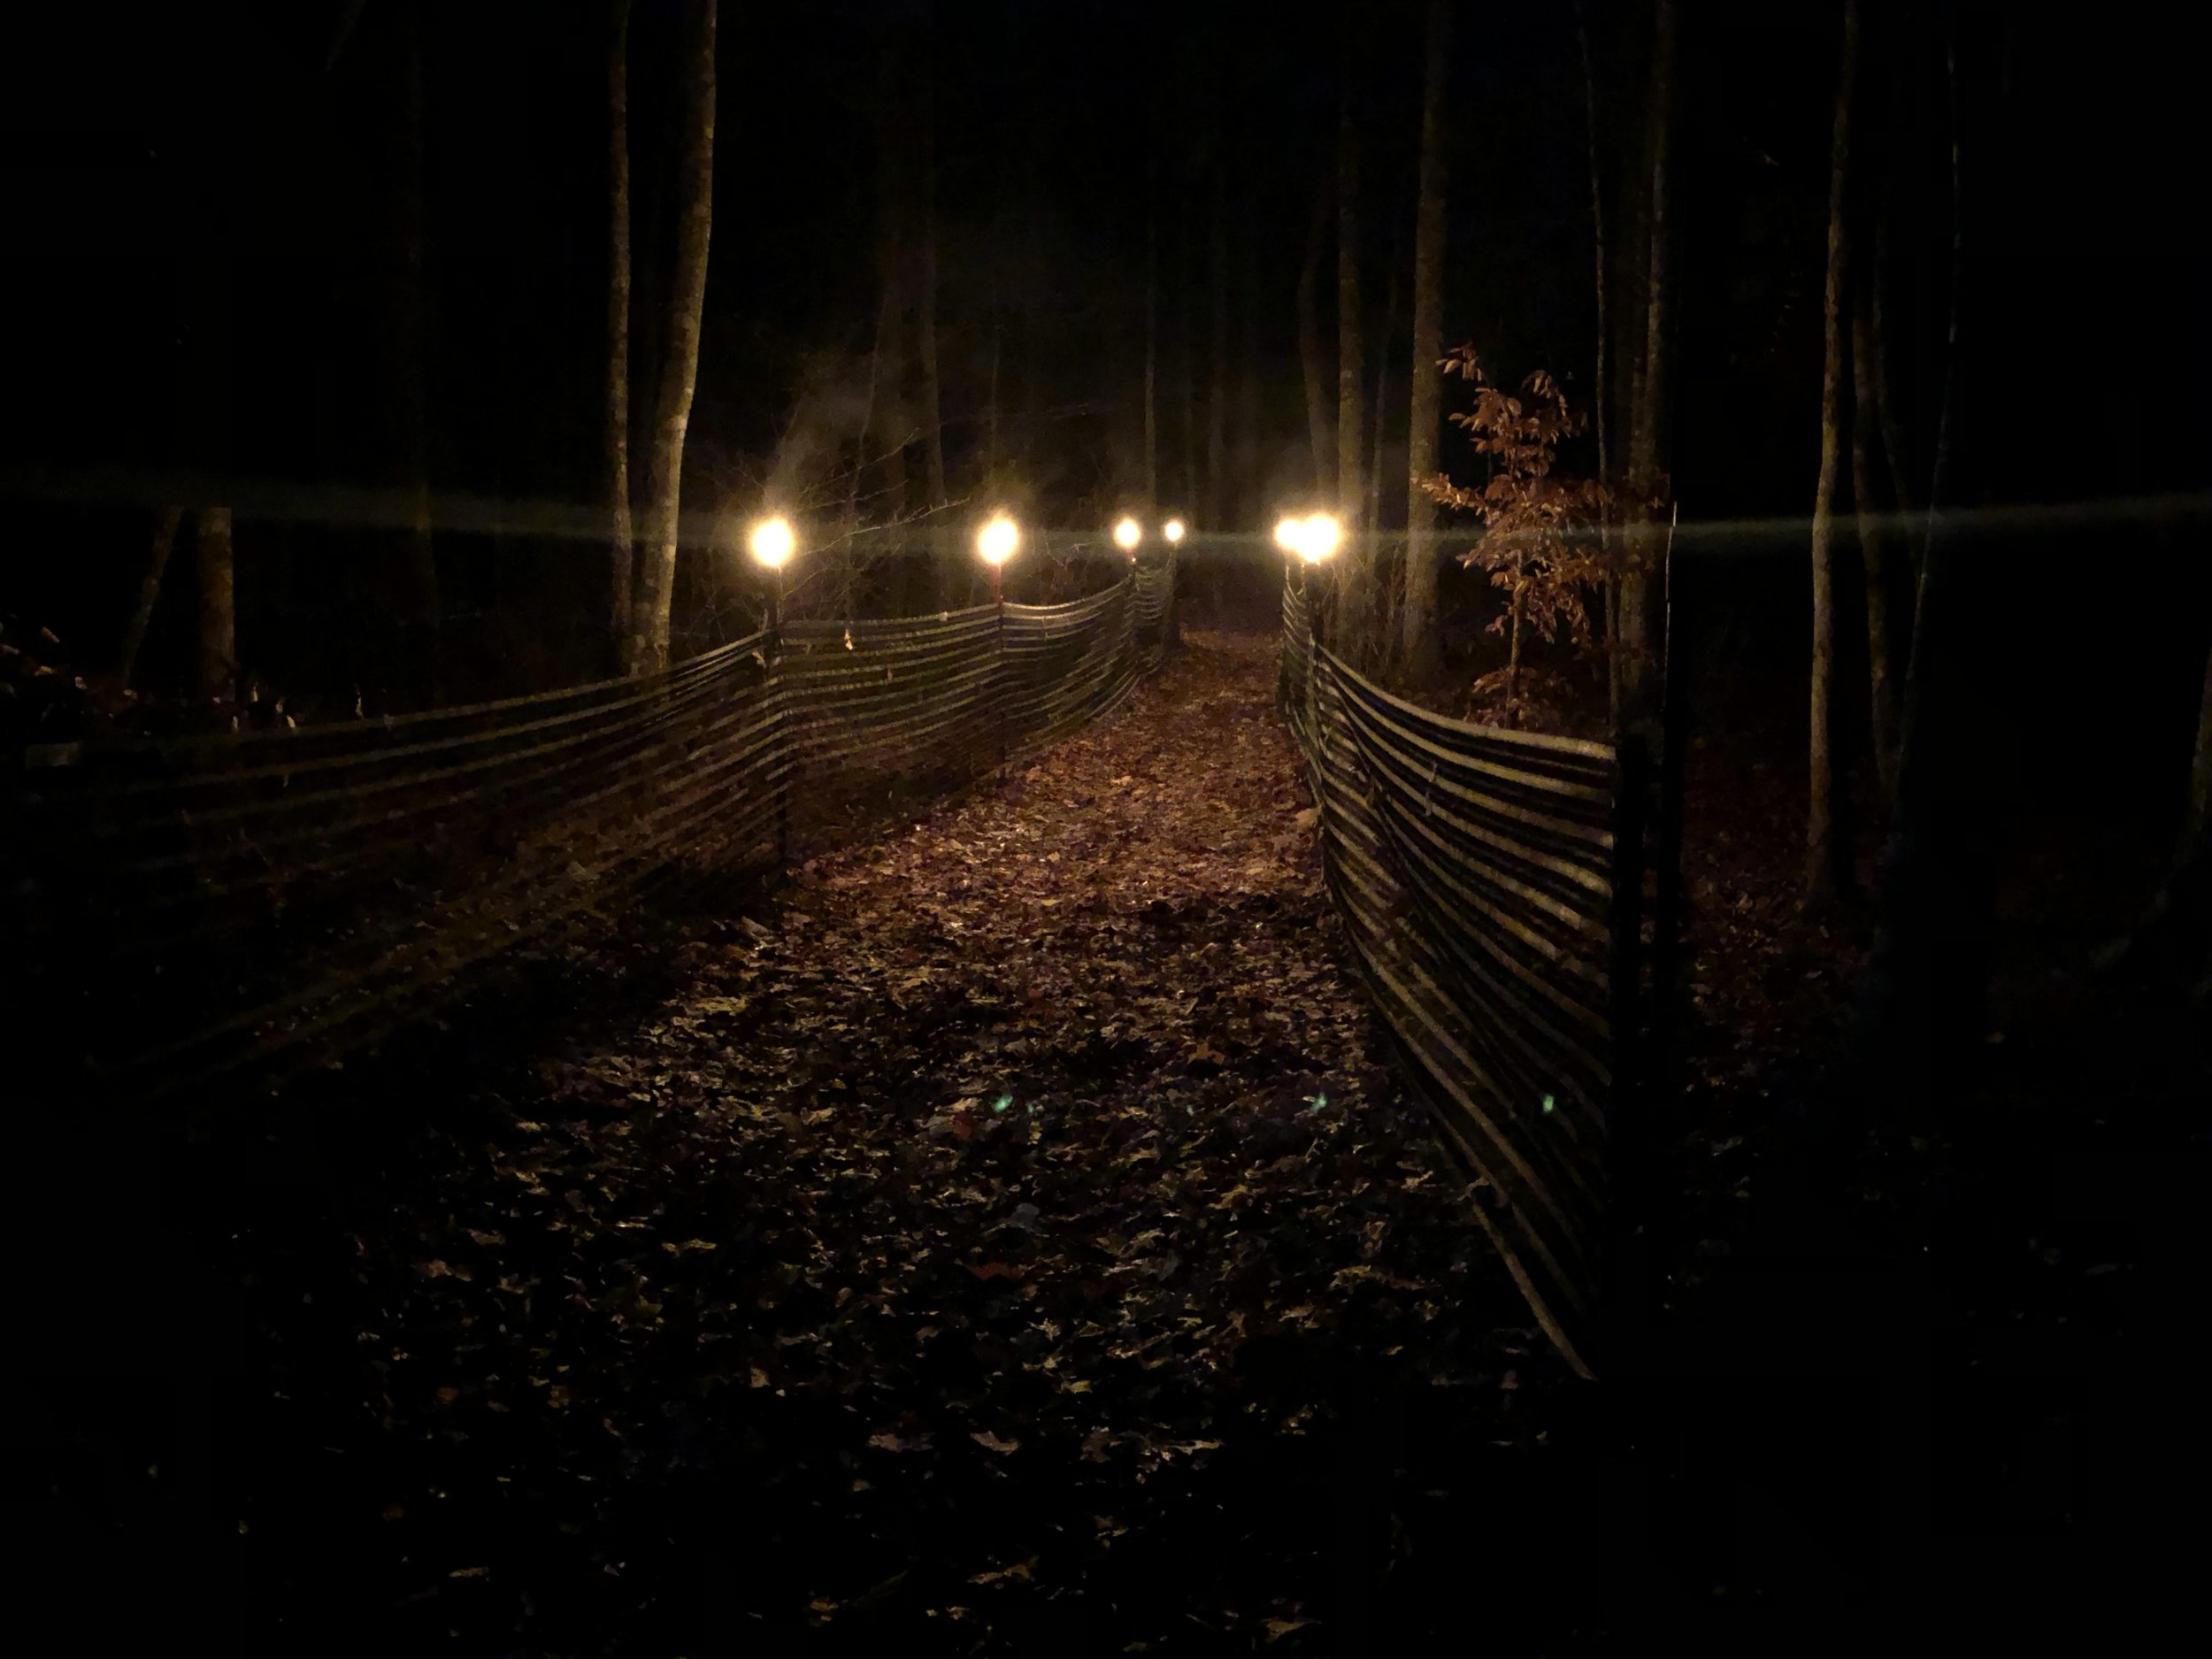 The start line lights up the forest in the early hours of the morning.